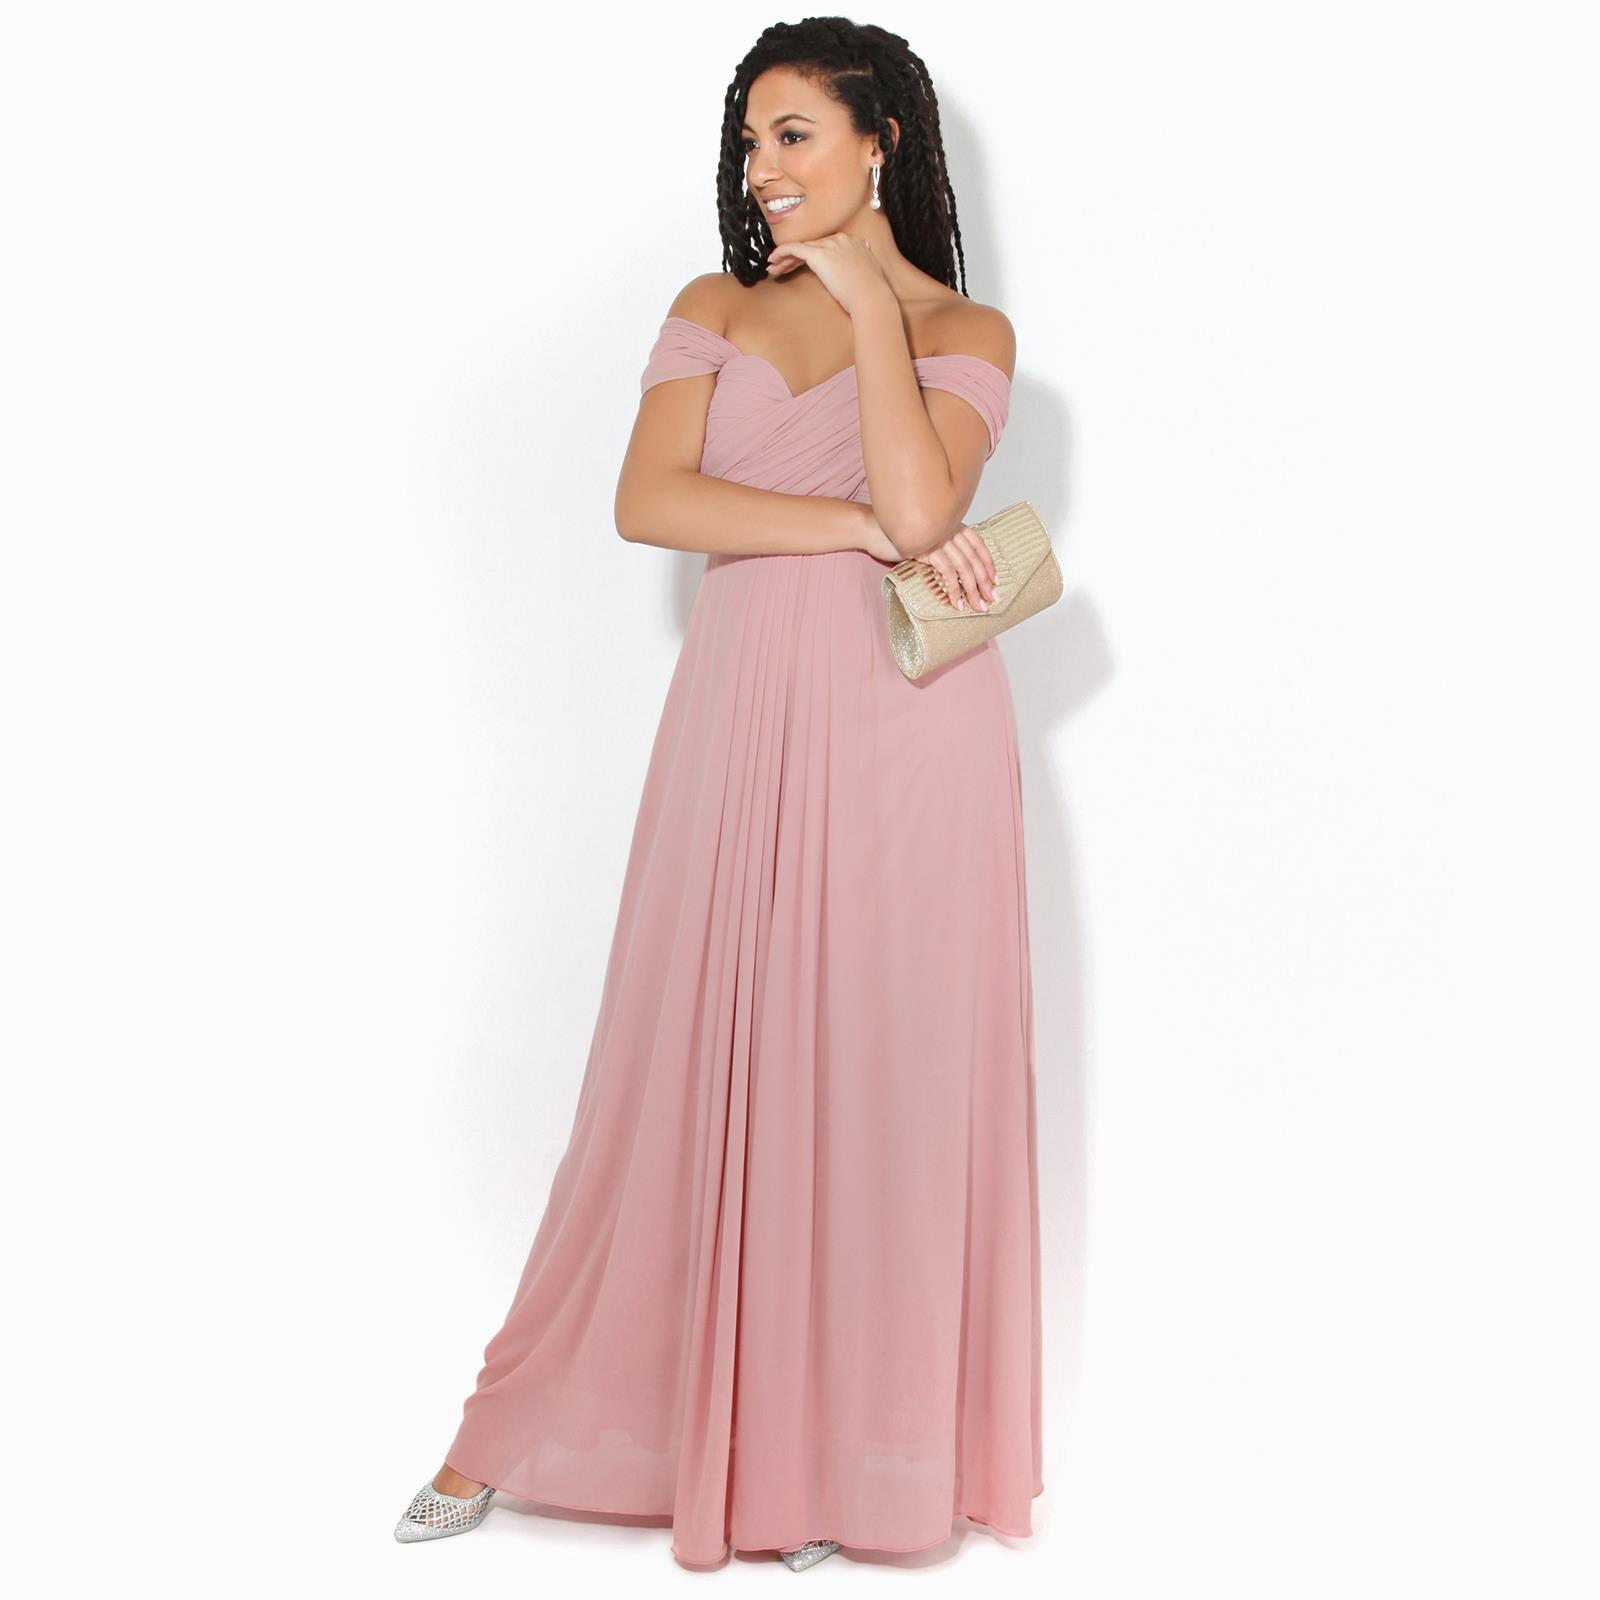 Womens-Formal-Evening-Wedding-Maxi-Prom-Dress-Long-On-Off-Shoulder-Ball-Gown thumbnail 25